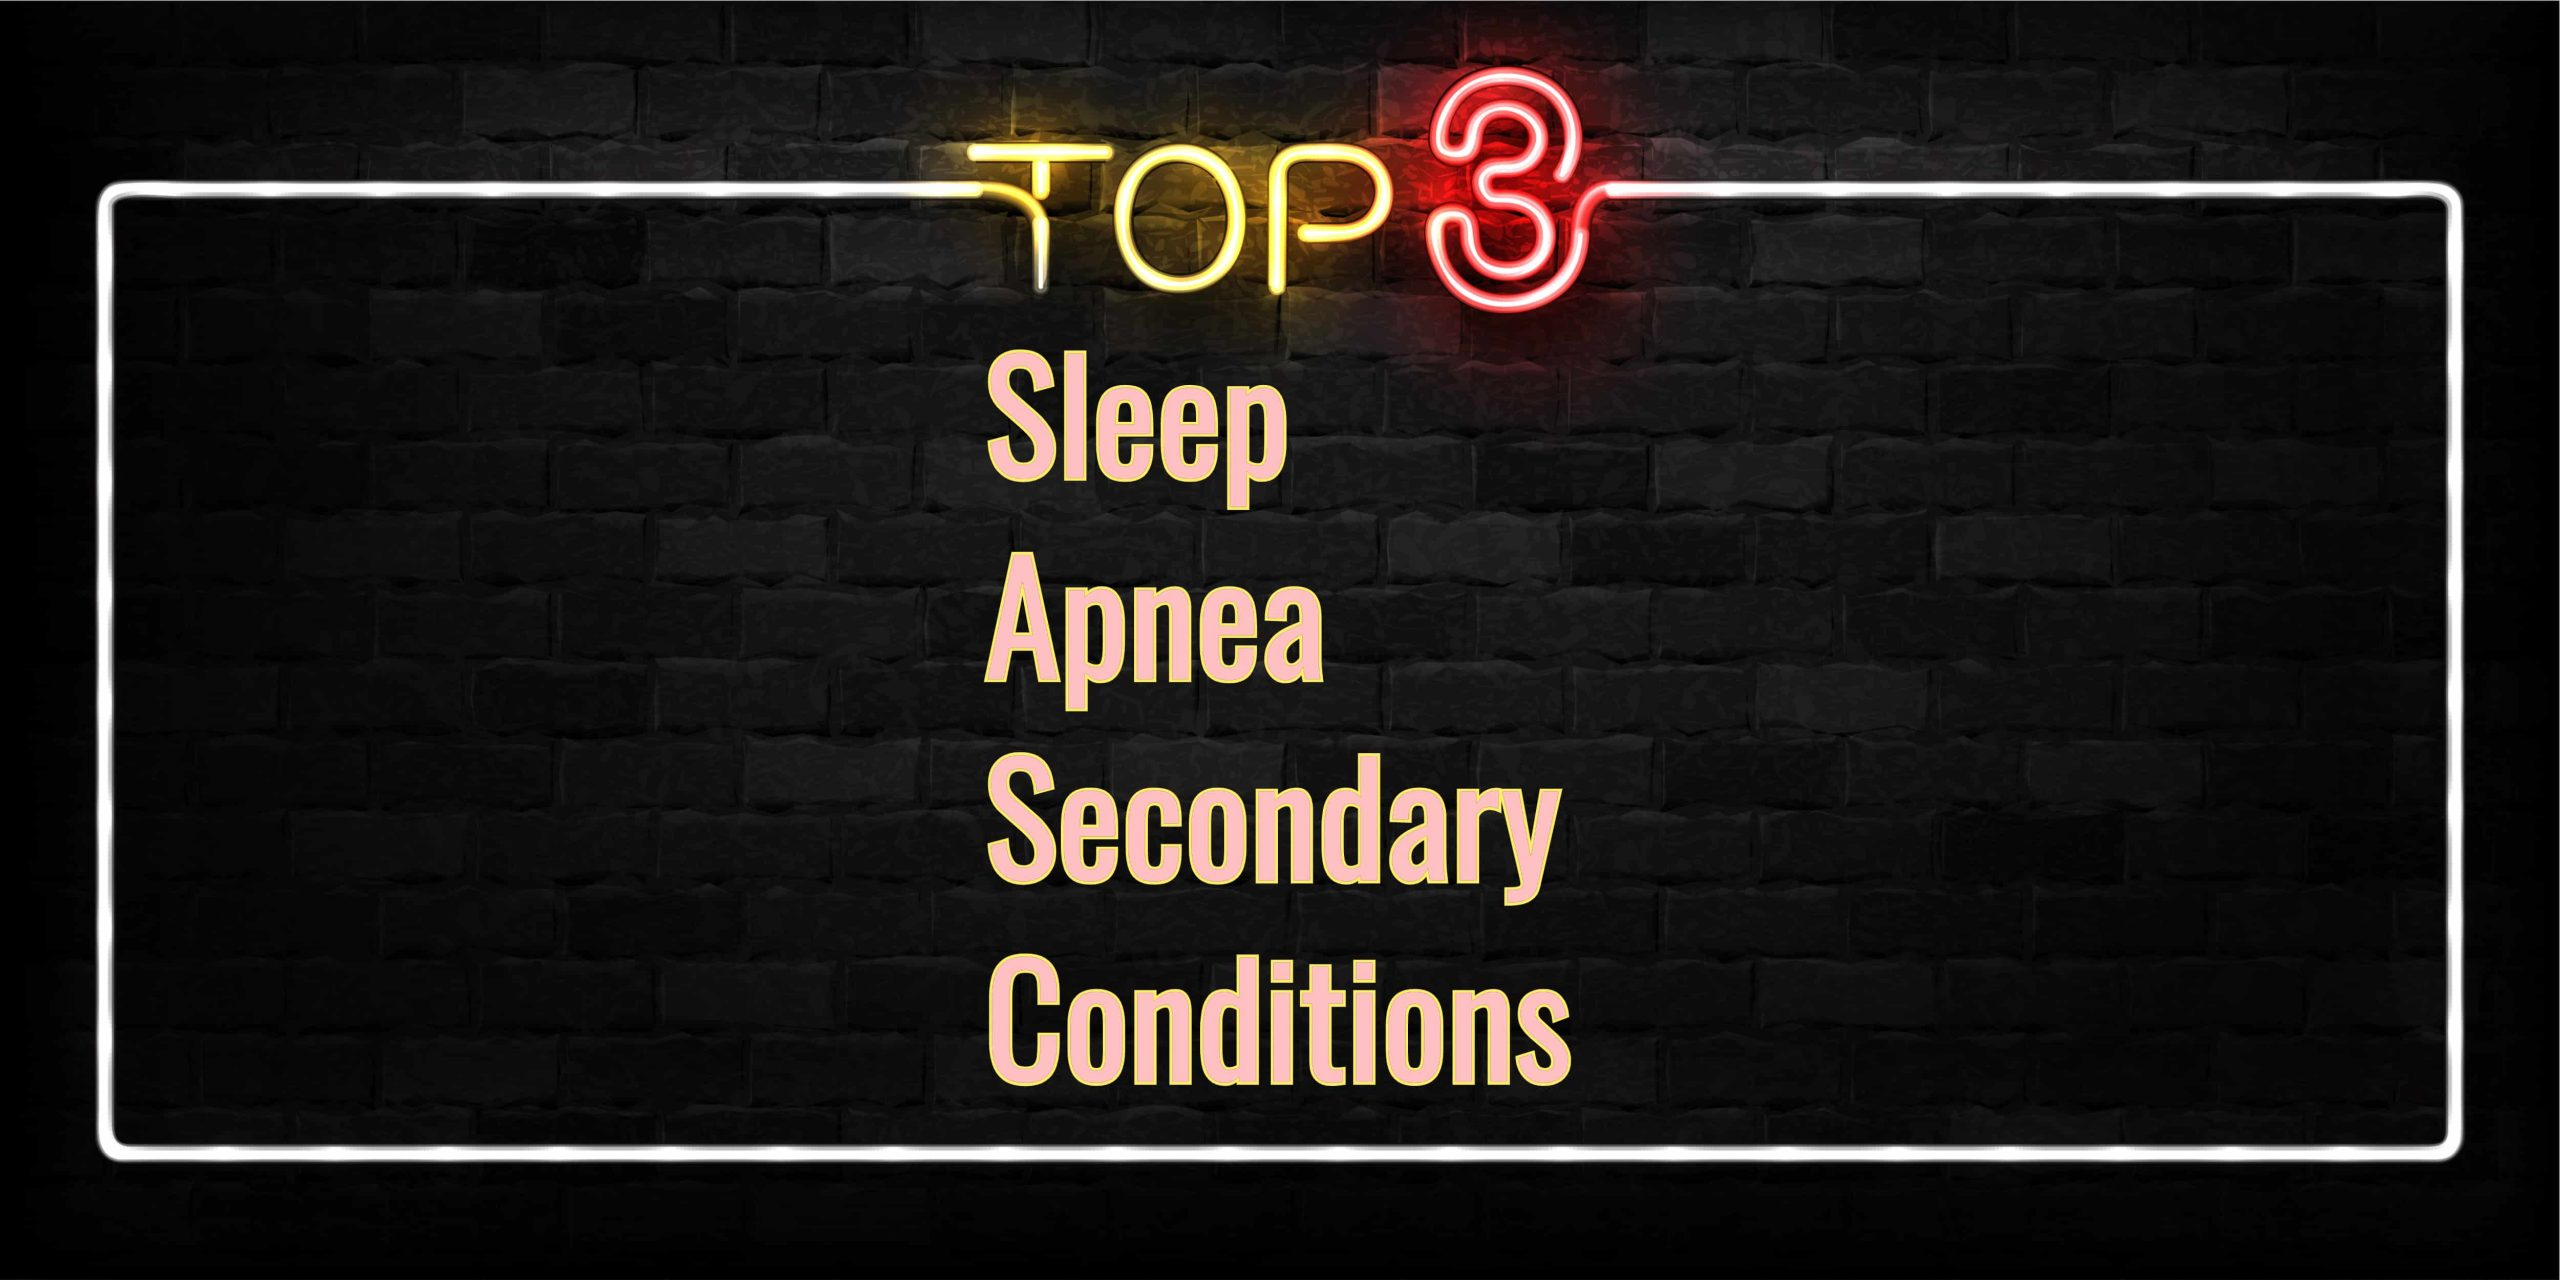 Top 3 Sleep Apnea Secondary Conditions